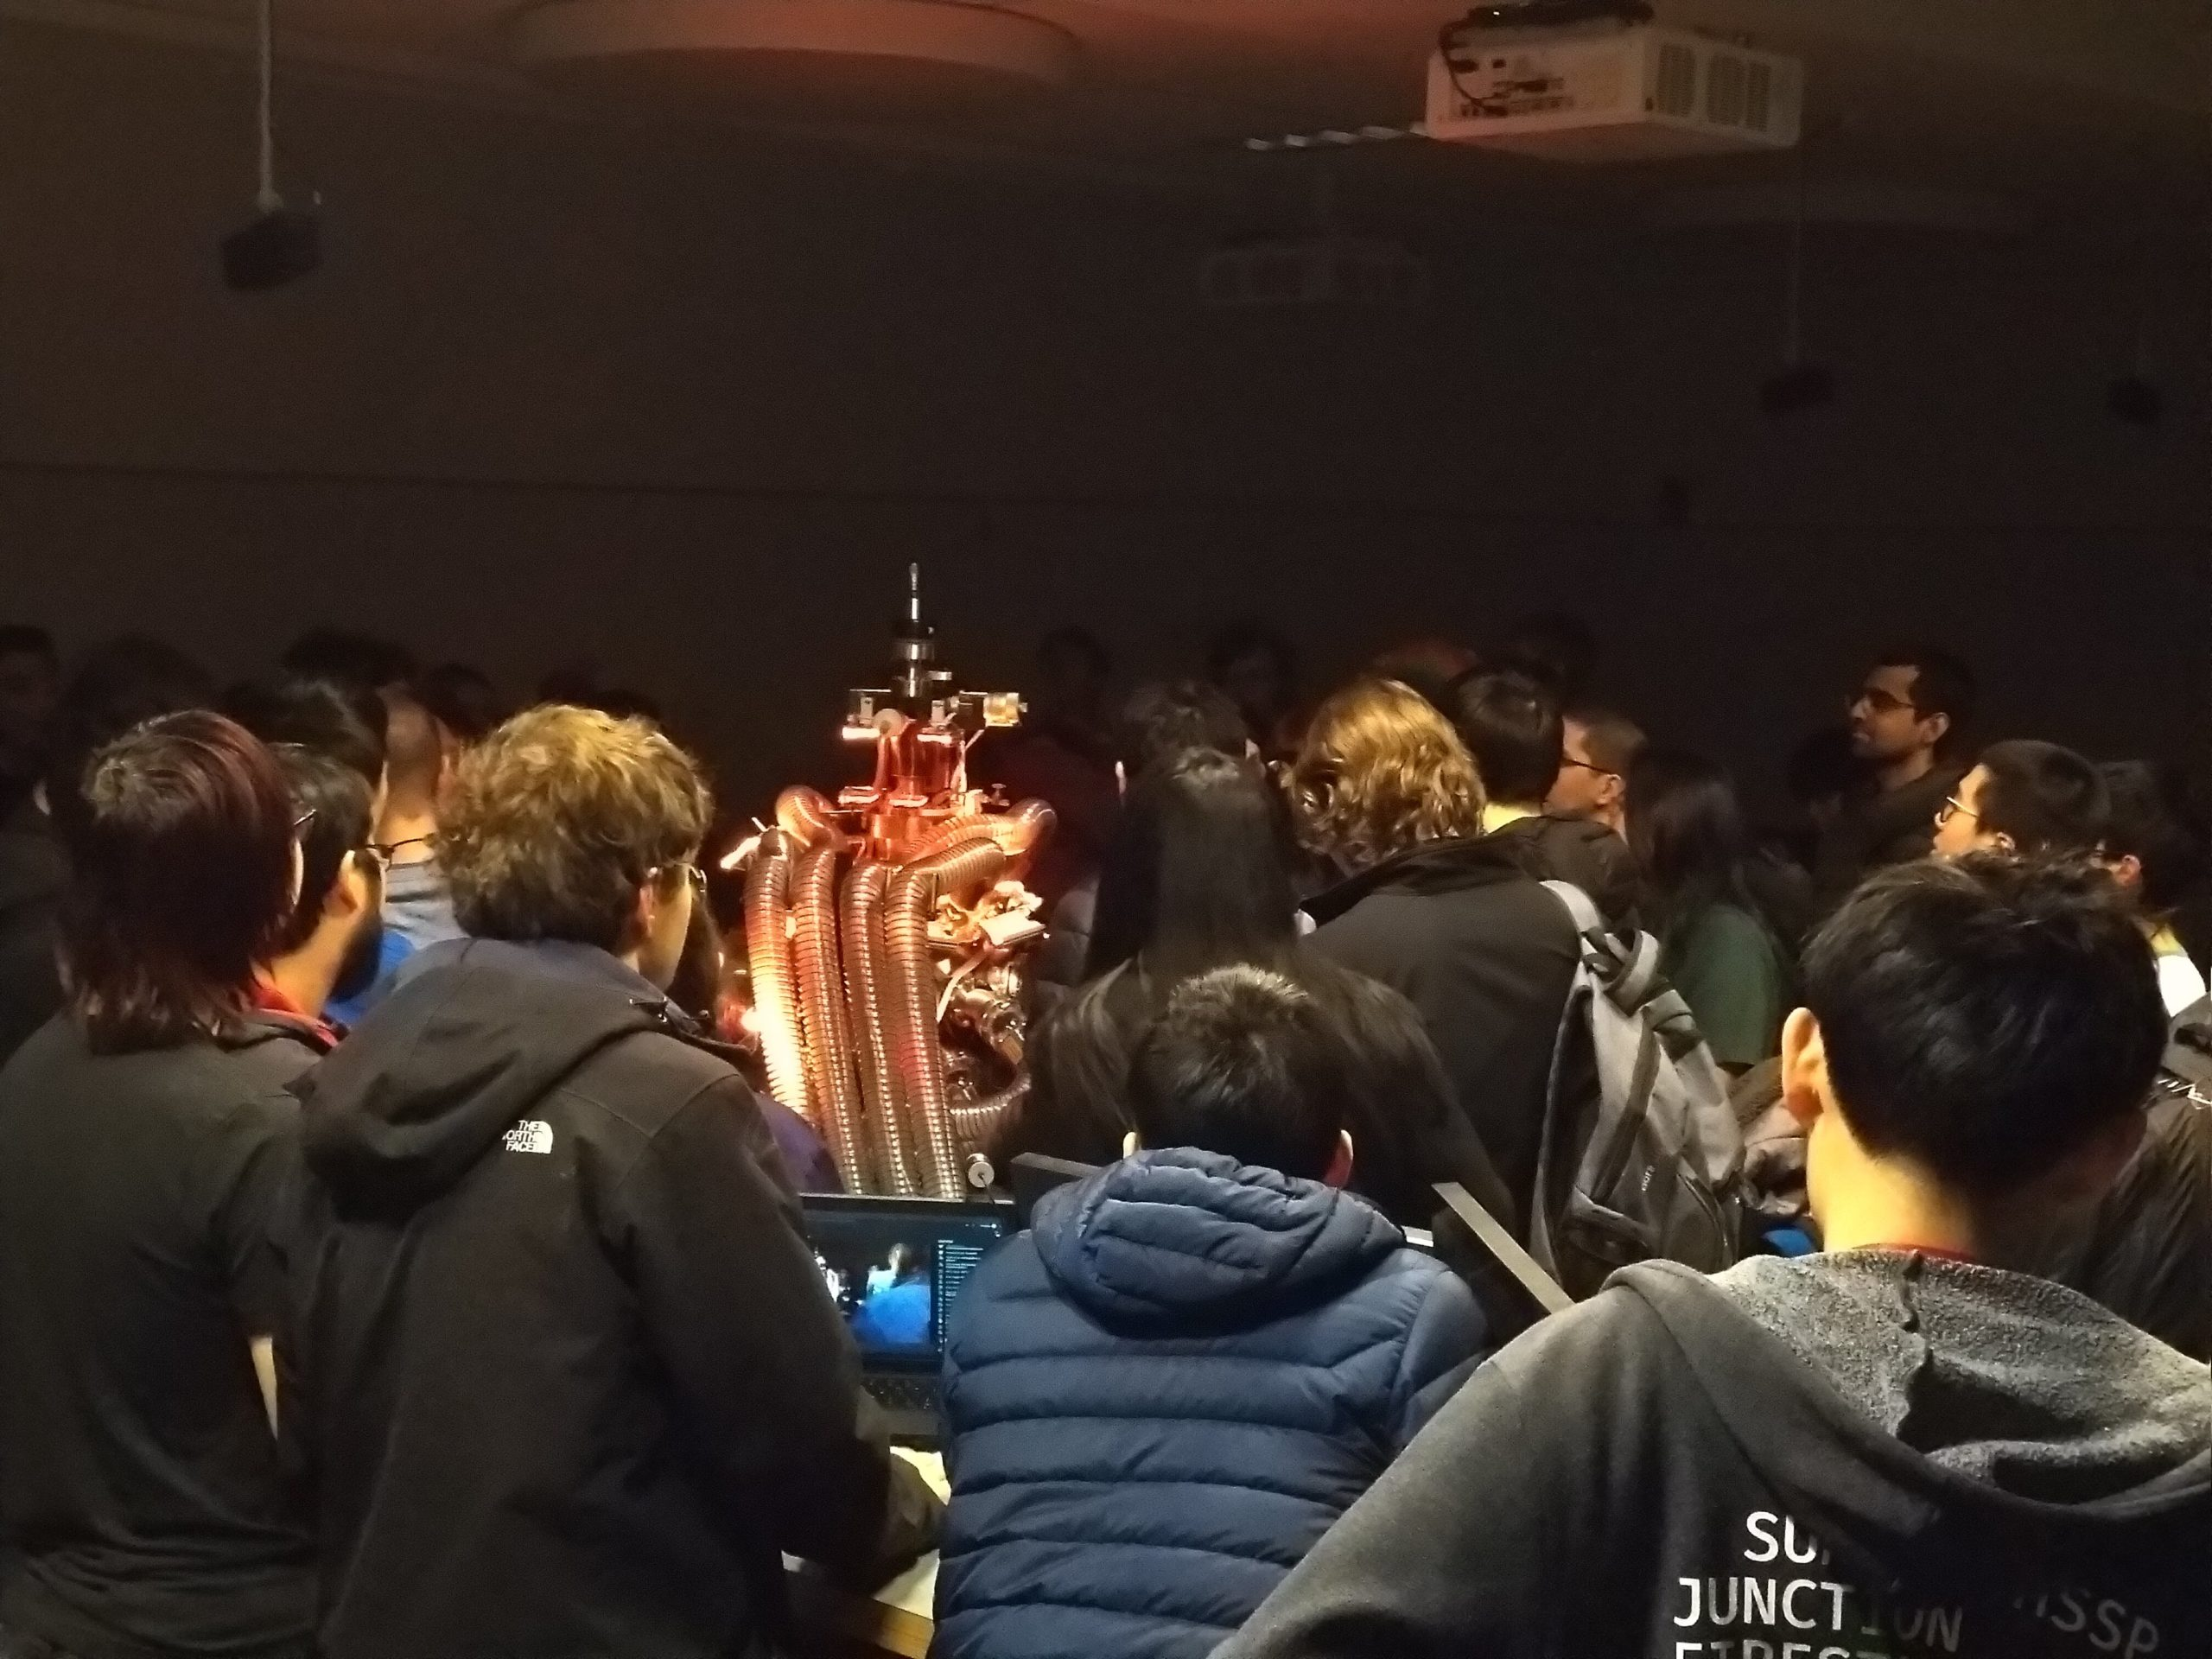 a bunch of people crowding around this… machine glowing in different colors